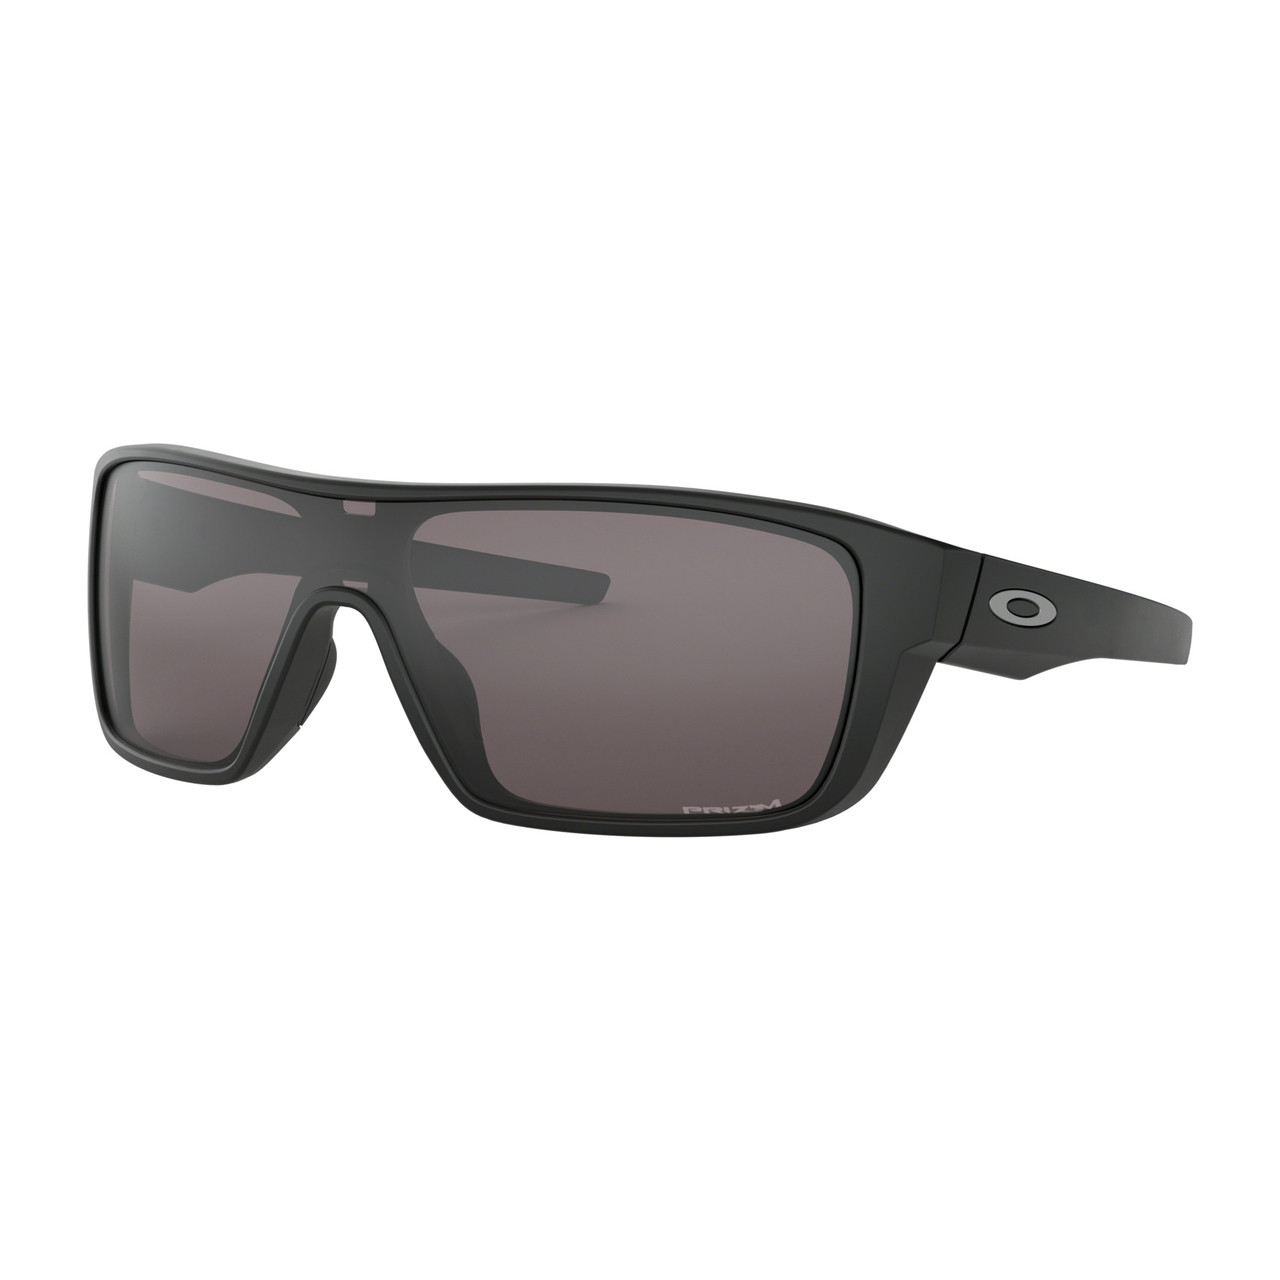 76c75bd93900f Oakley Sunglasses - Straightback Prizm - Matte Black Prizm Black - Surf and  Dirt